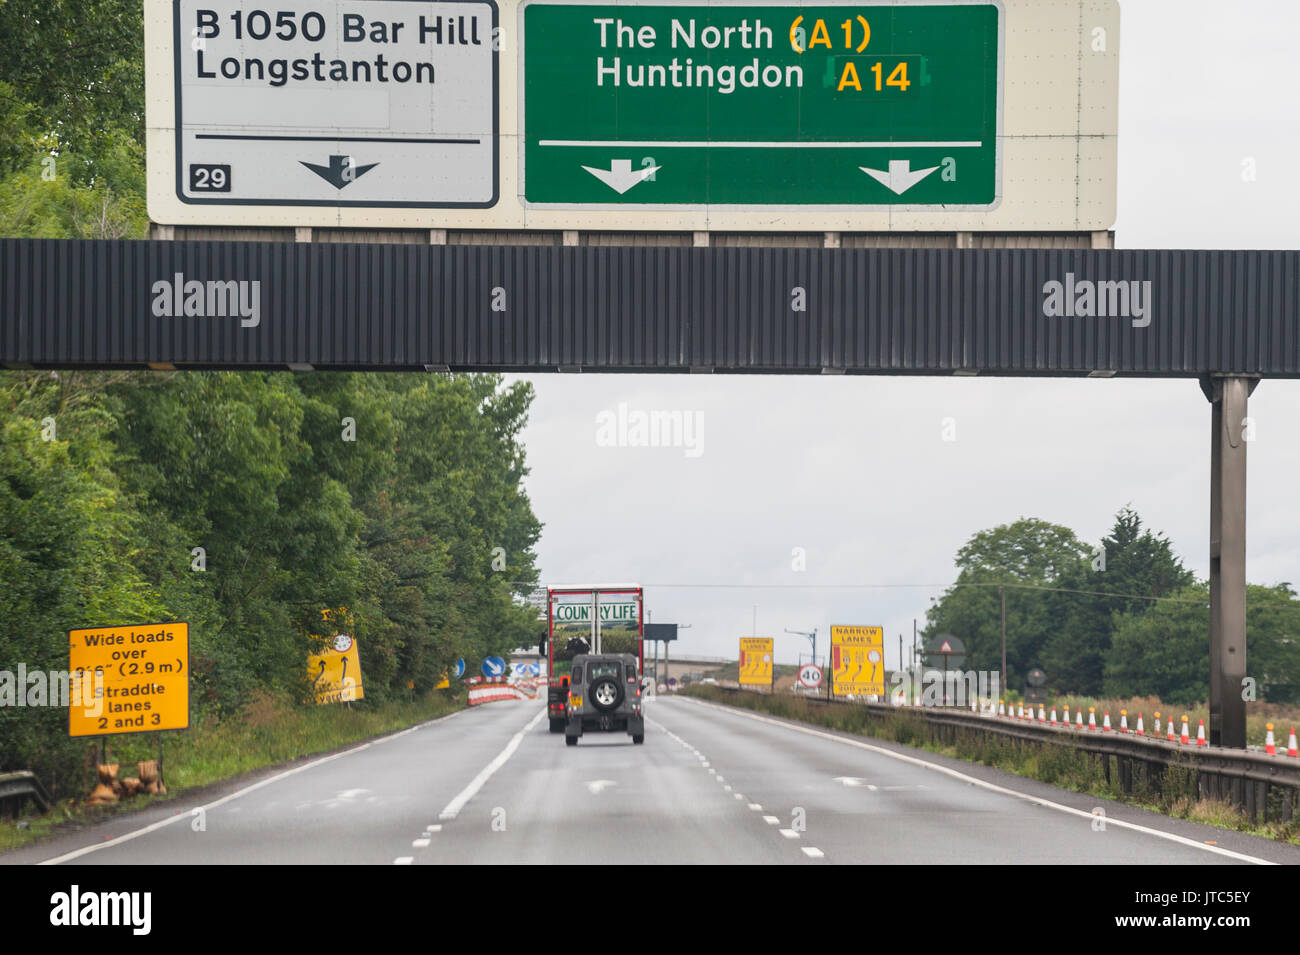 A road sign showing directions for the North on a main road in the Uk - Stock Image